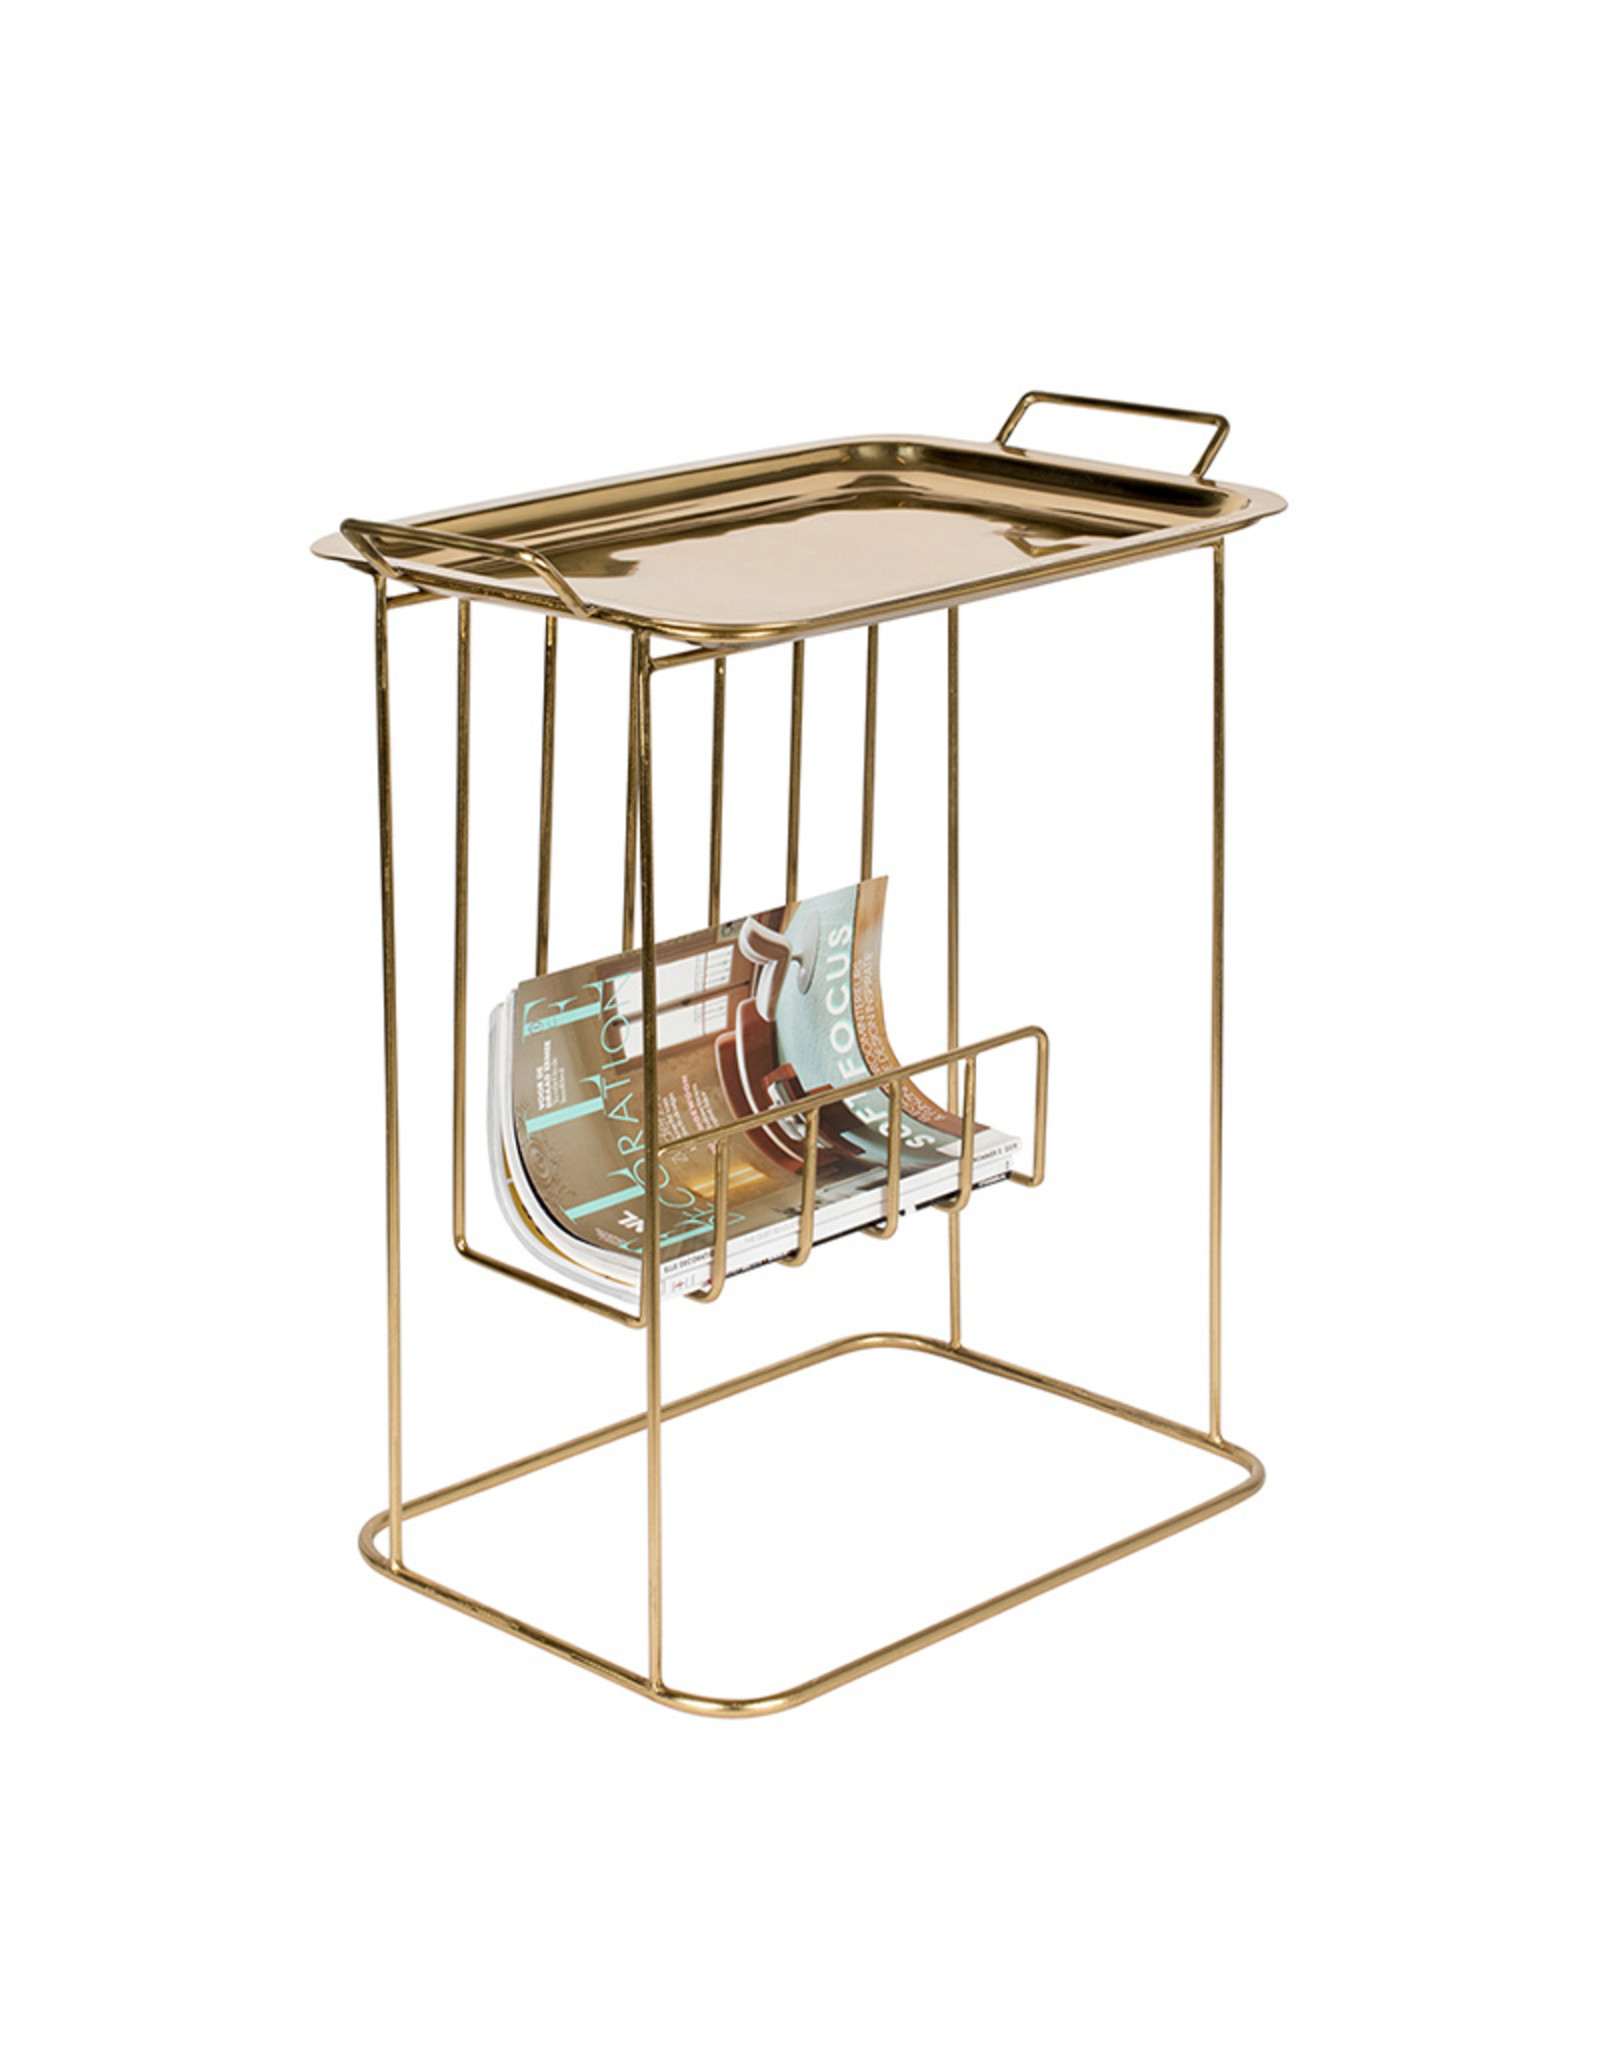 ZUIVER BV Niwas Side Table